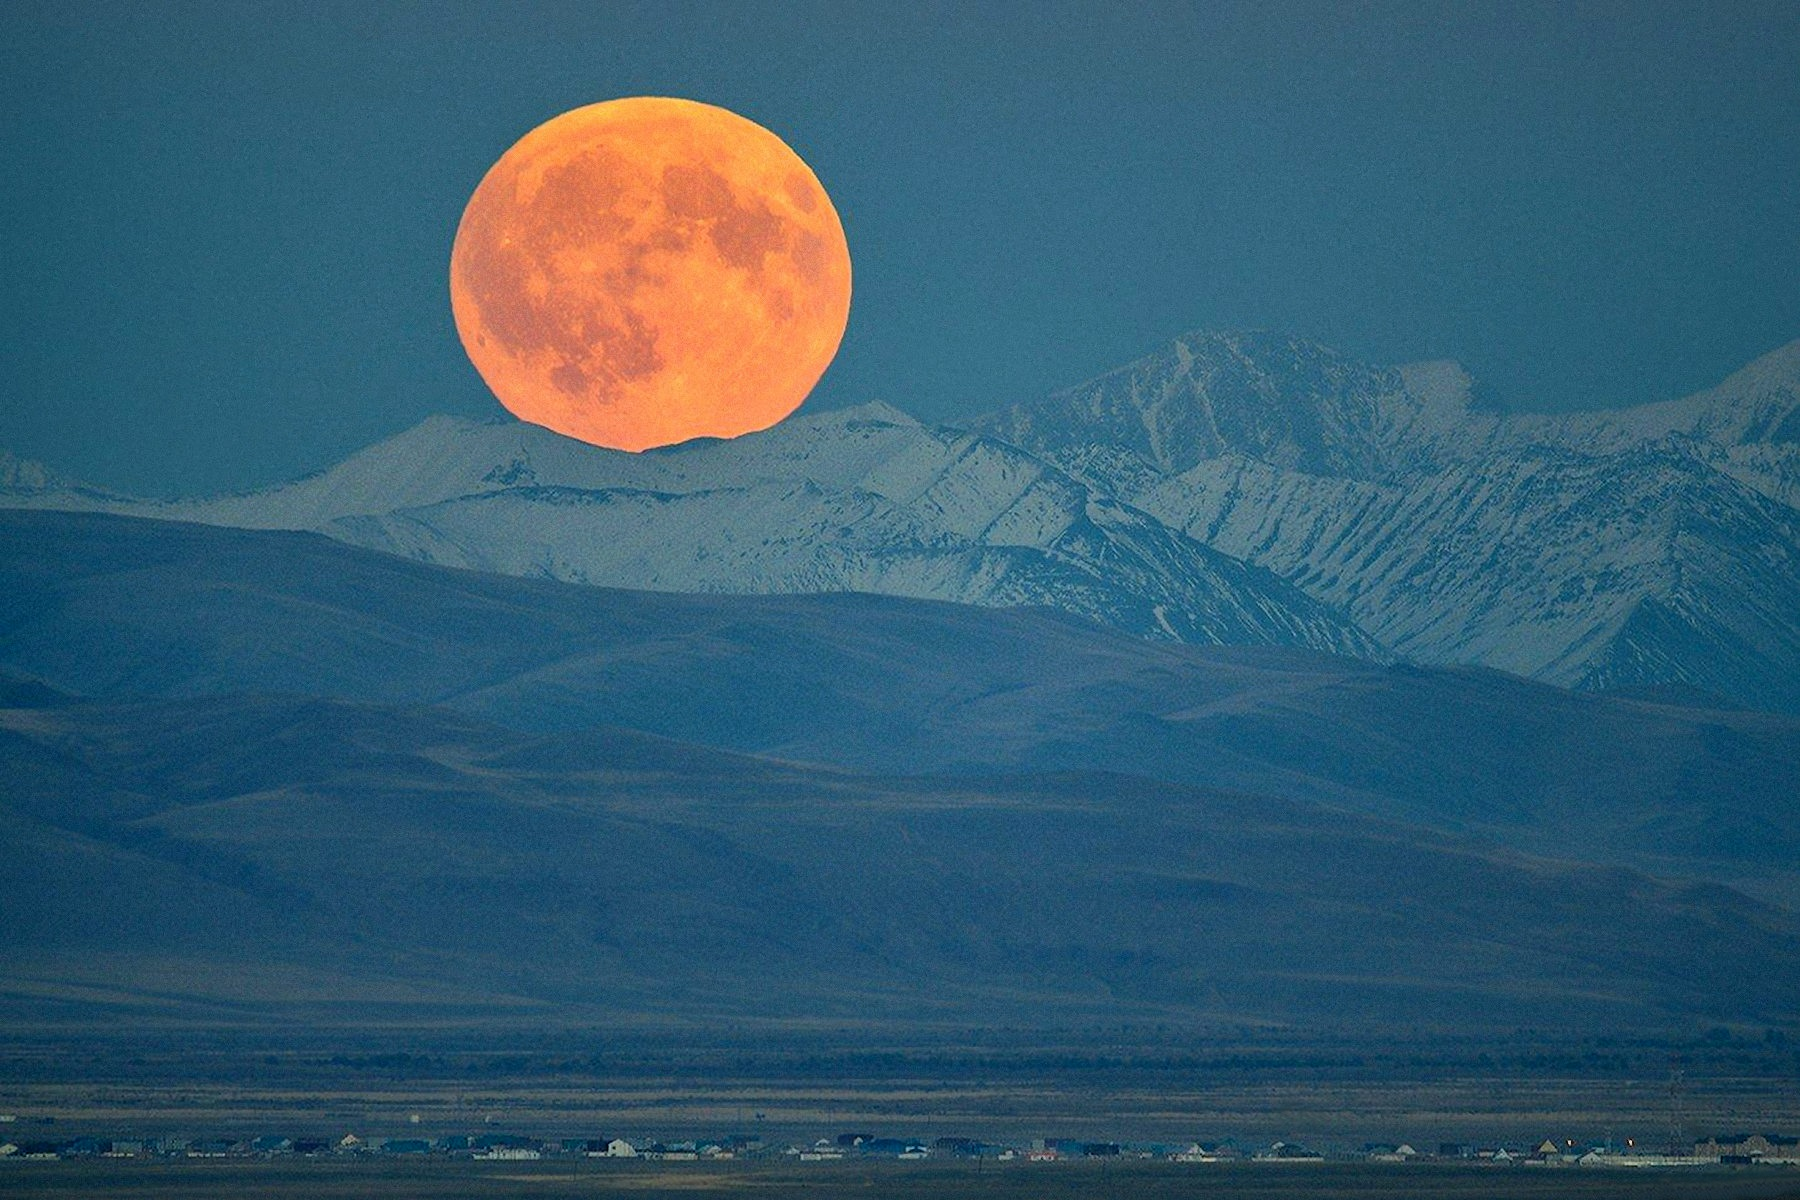 00-svetlana-kaina-full-moon-rising-on-the-edge-of-the-altai-mountains-in-mongolia-2016